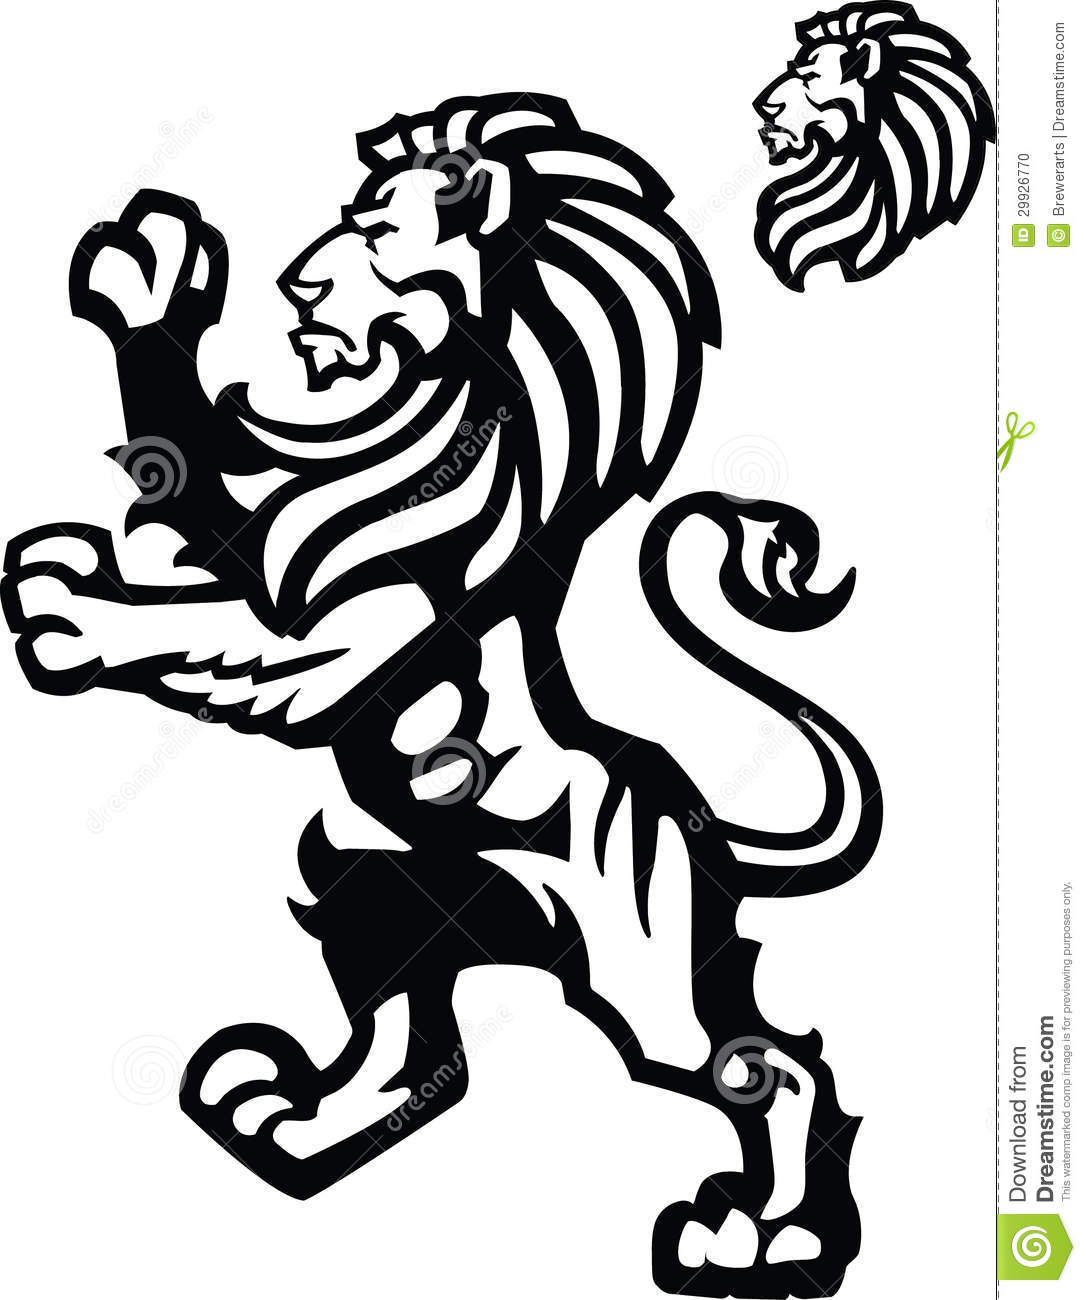 1086x1300 Rampant Lion Of Judah Tattoo Design In 2017 Real Photo, Pictures